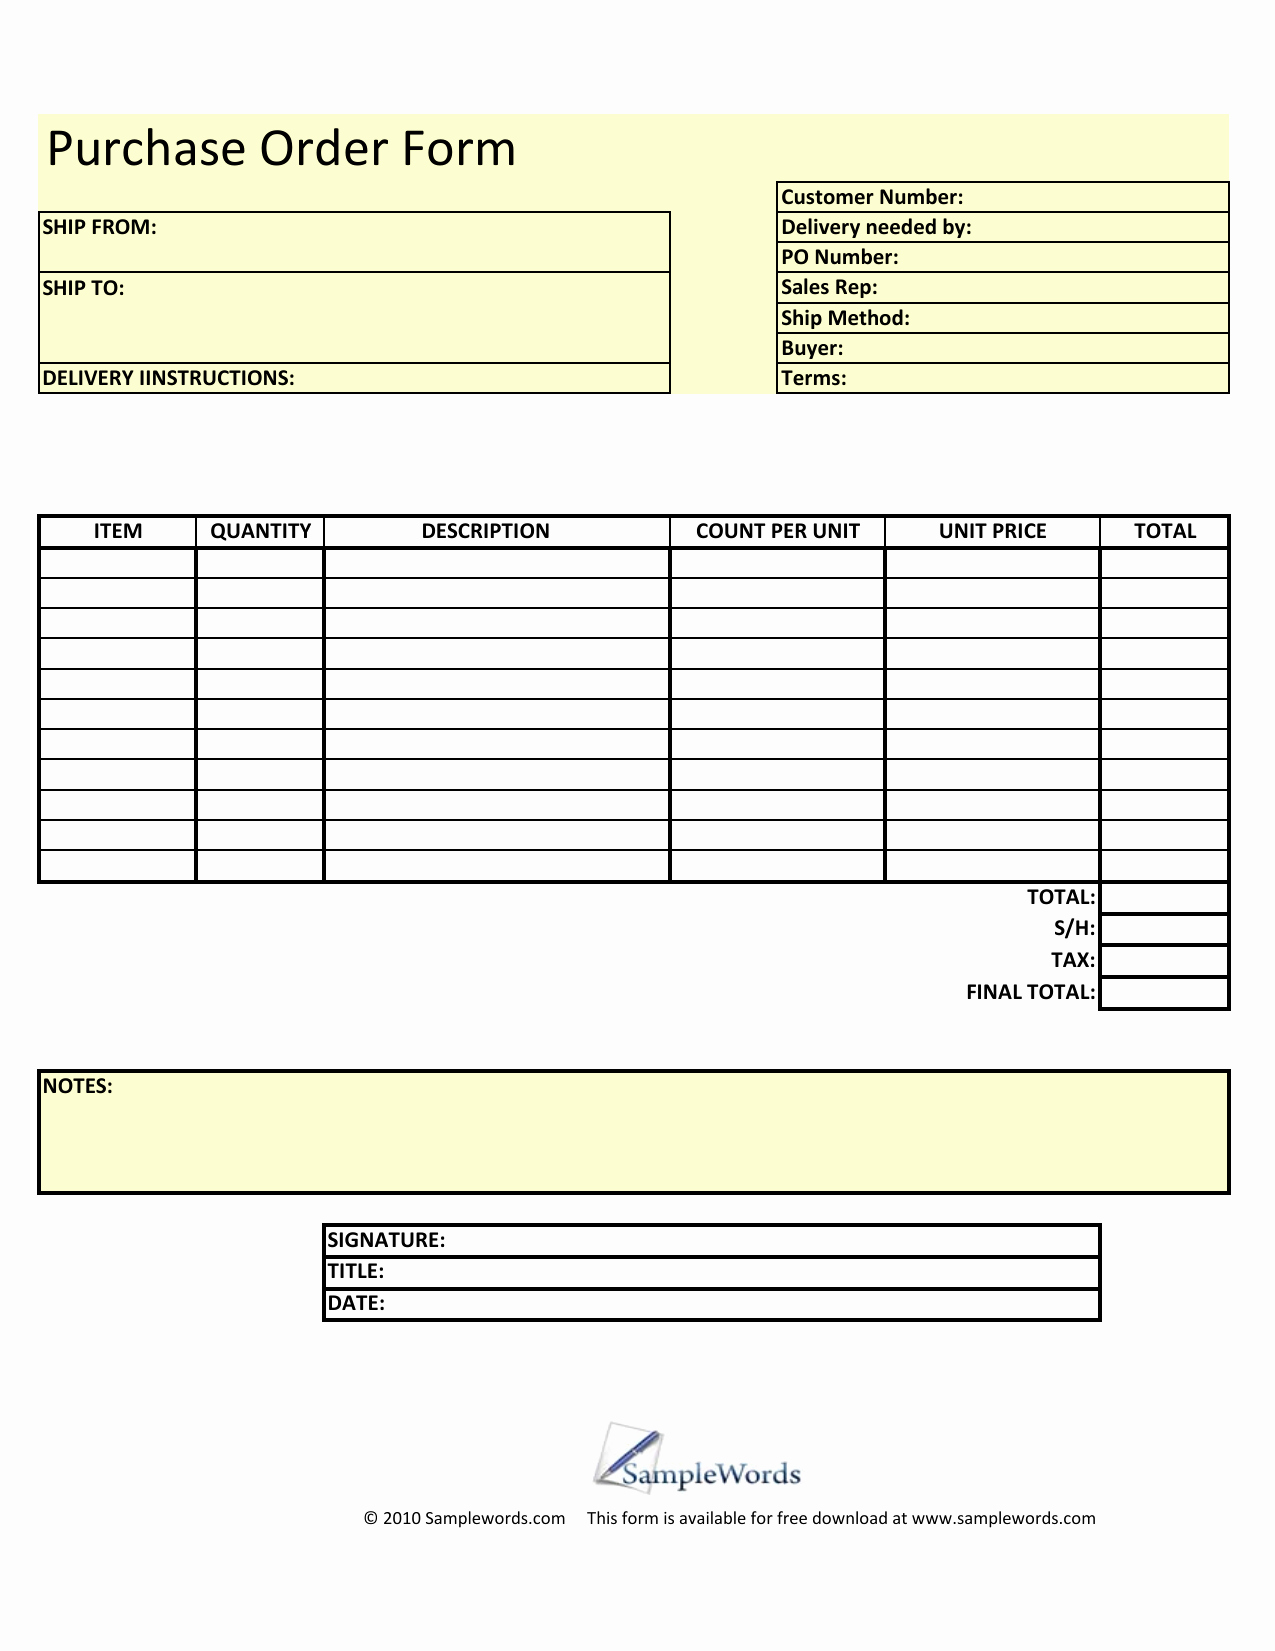 Free Excel Purchase order Templates Awesome Download Blank Purchase order form Template Excel